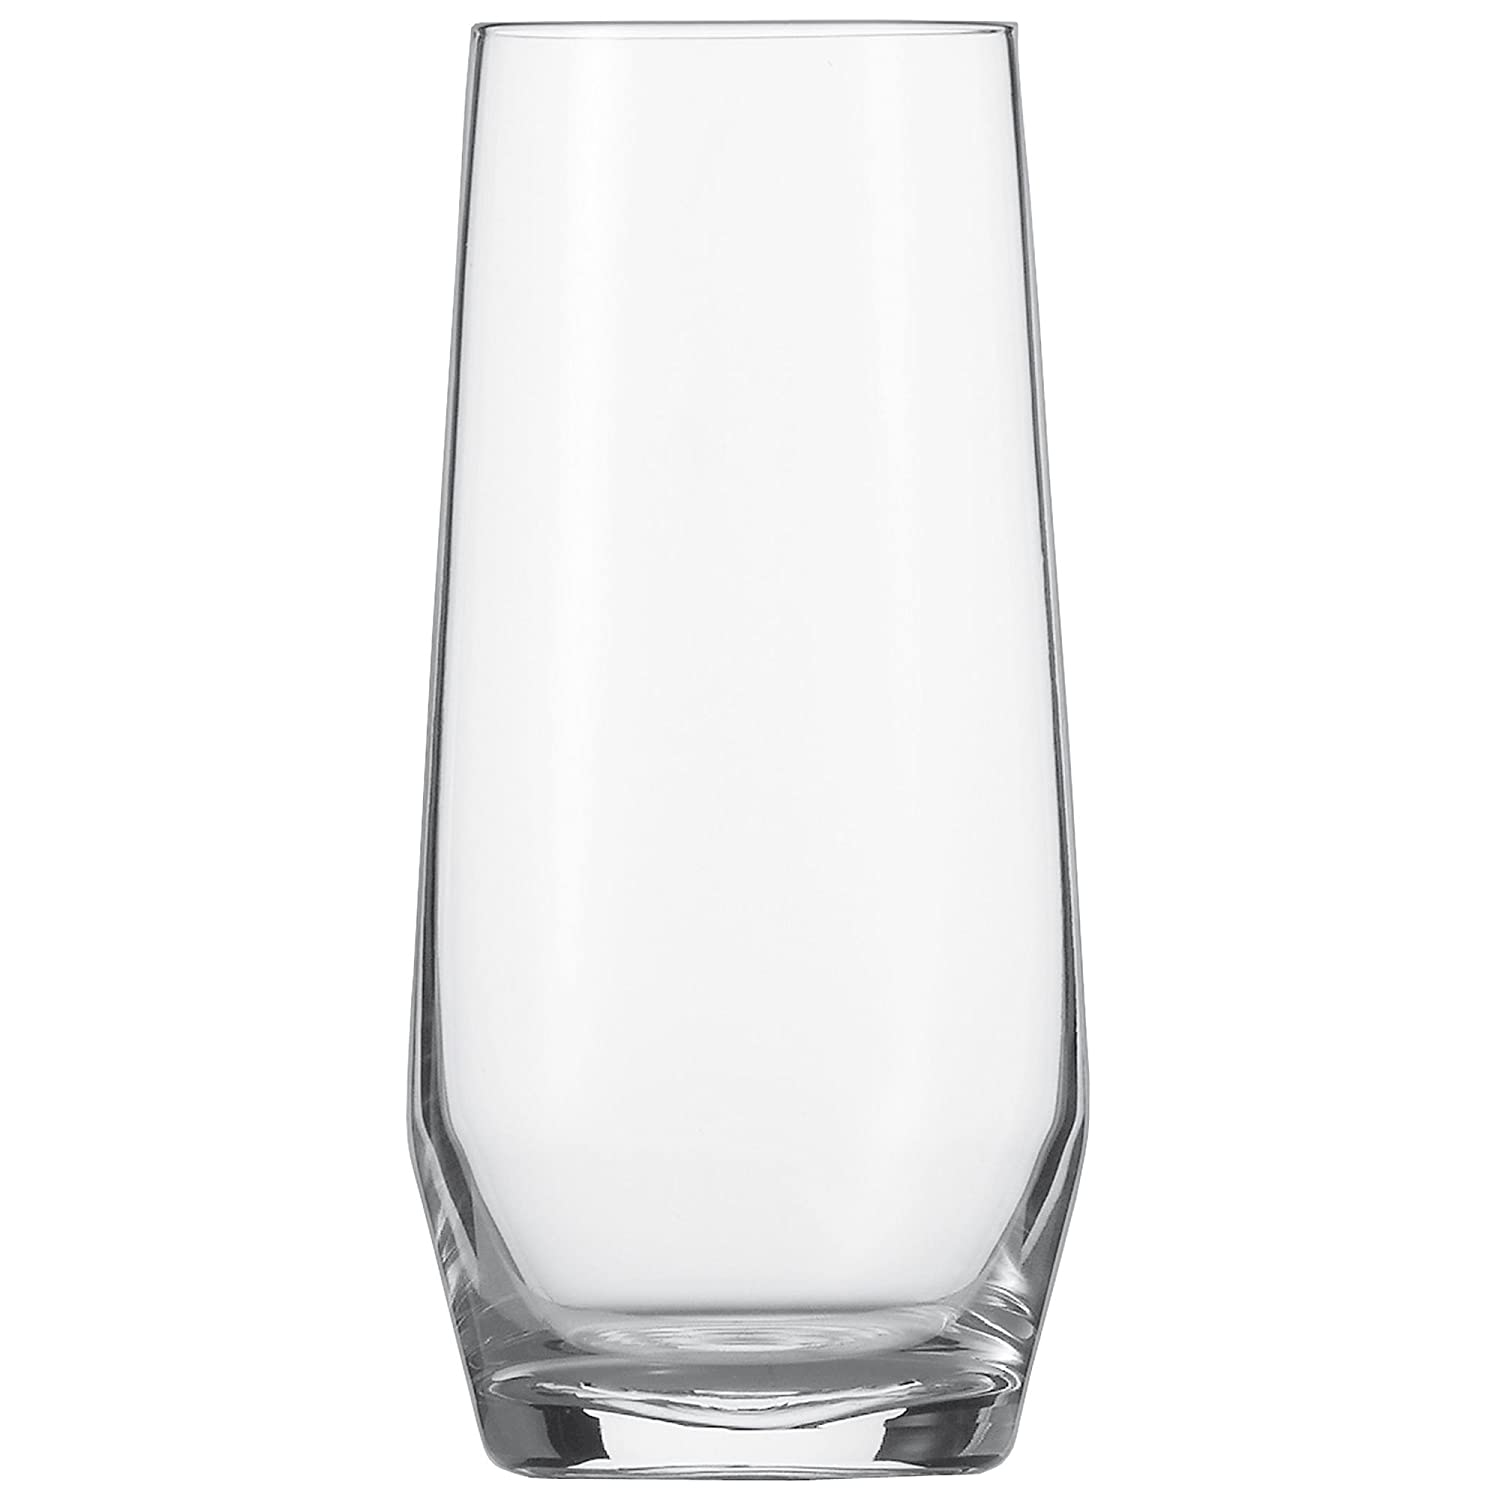 Set of 6 Schott Zwiesel Tritan Crystal Glass Pure Barware Collection Tumbler Cocktail Glass, 12.1-Ounce, Set of 6